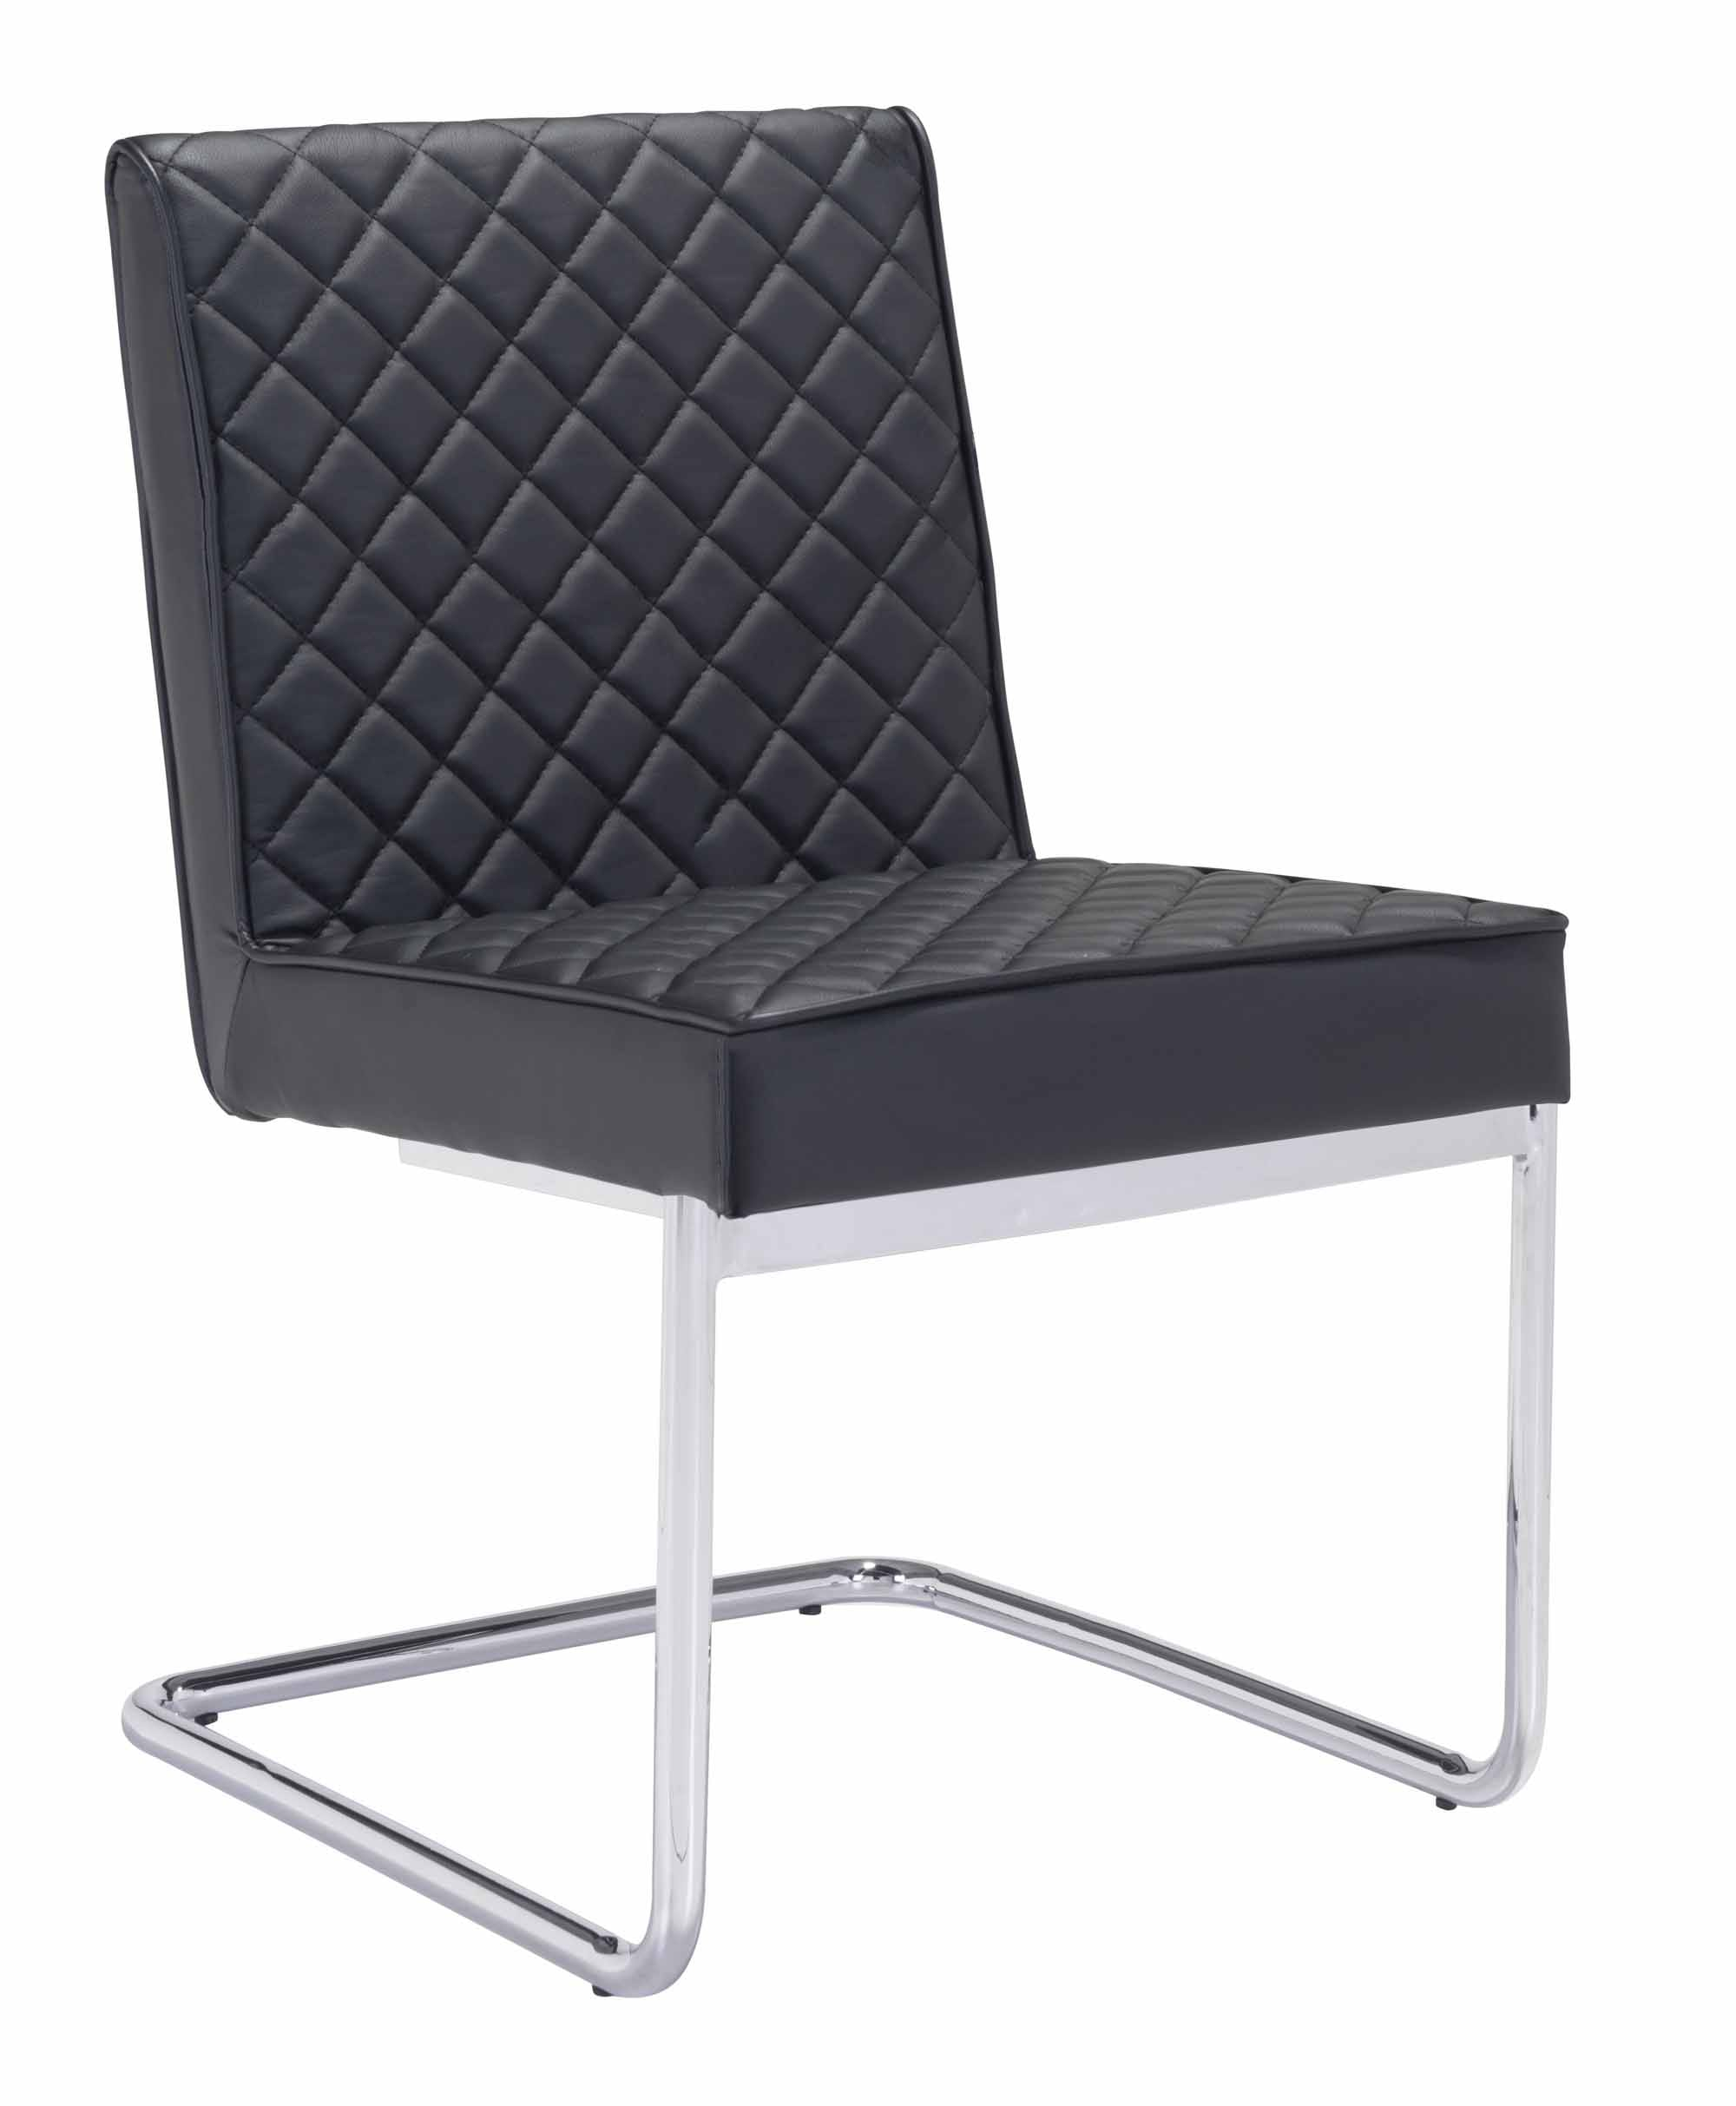 Quilt Armless Dining Chair Black by Zuo Modern : 100187 1 from futonland.com size 2000 x 2426 jpeg 172kB